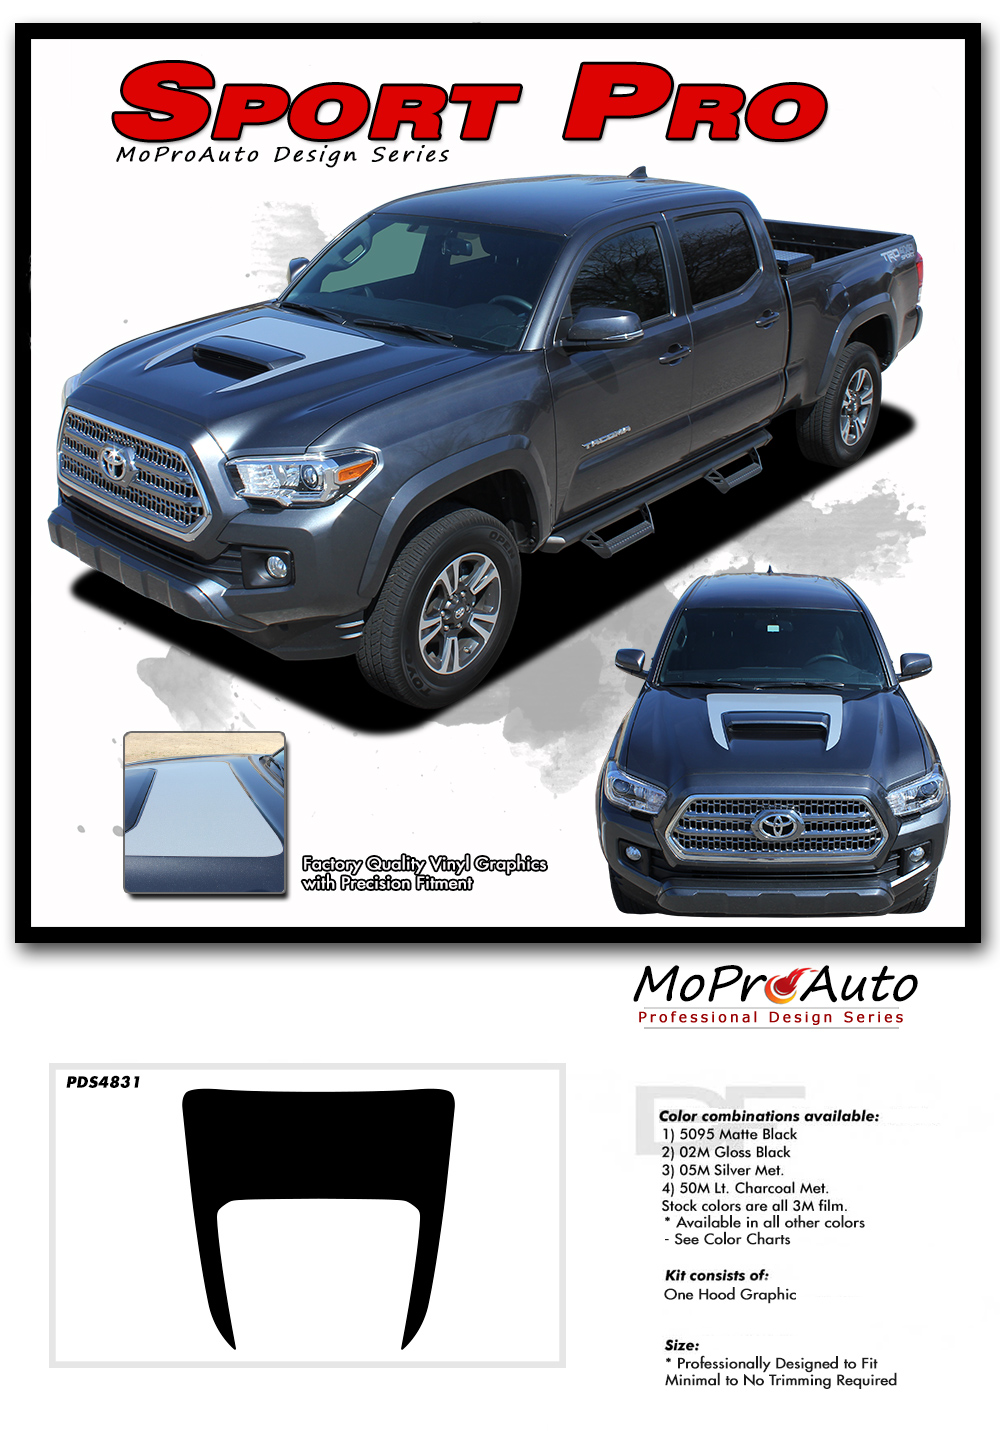 2015 2016 2017 2018 SPORT HOOD : Toyota Tacoma Truck TRD Sport Pro - MoProAuto Pro Design Series Vinyl Graphics, Stripes and Decals Kit